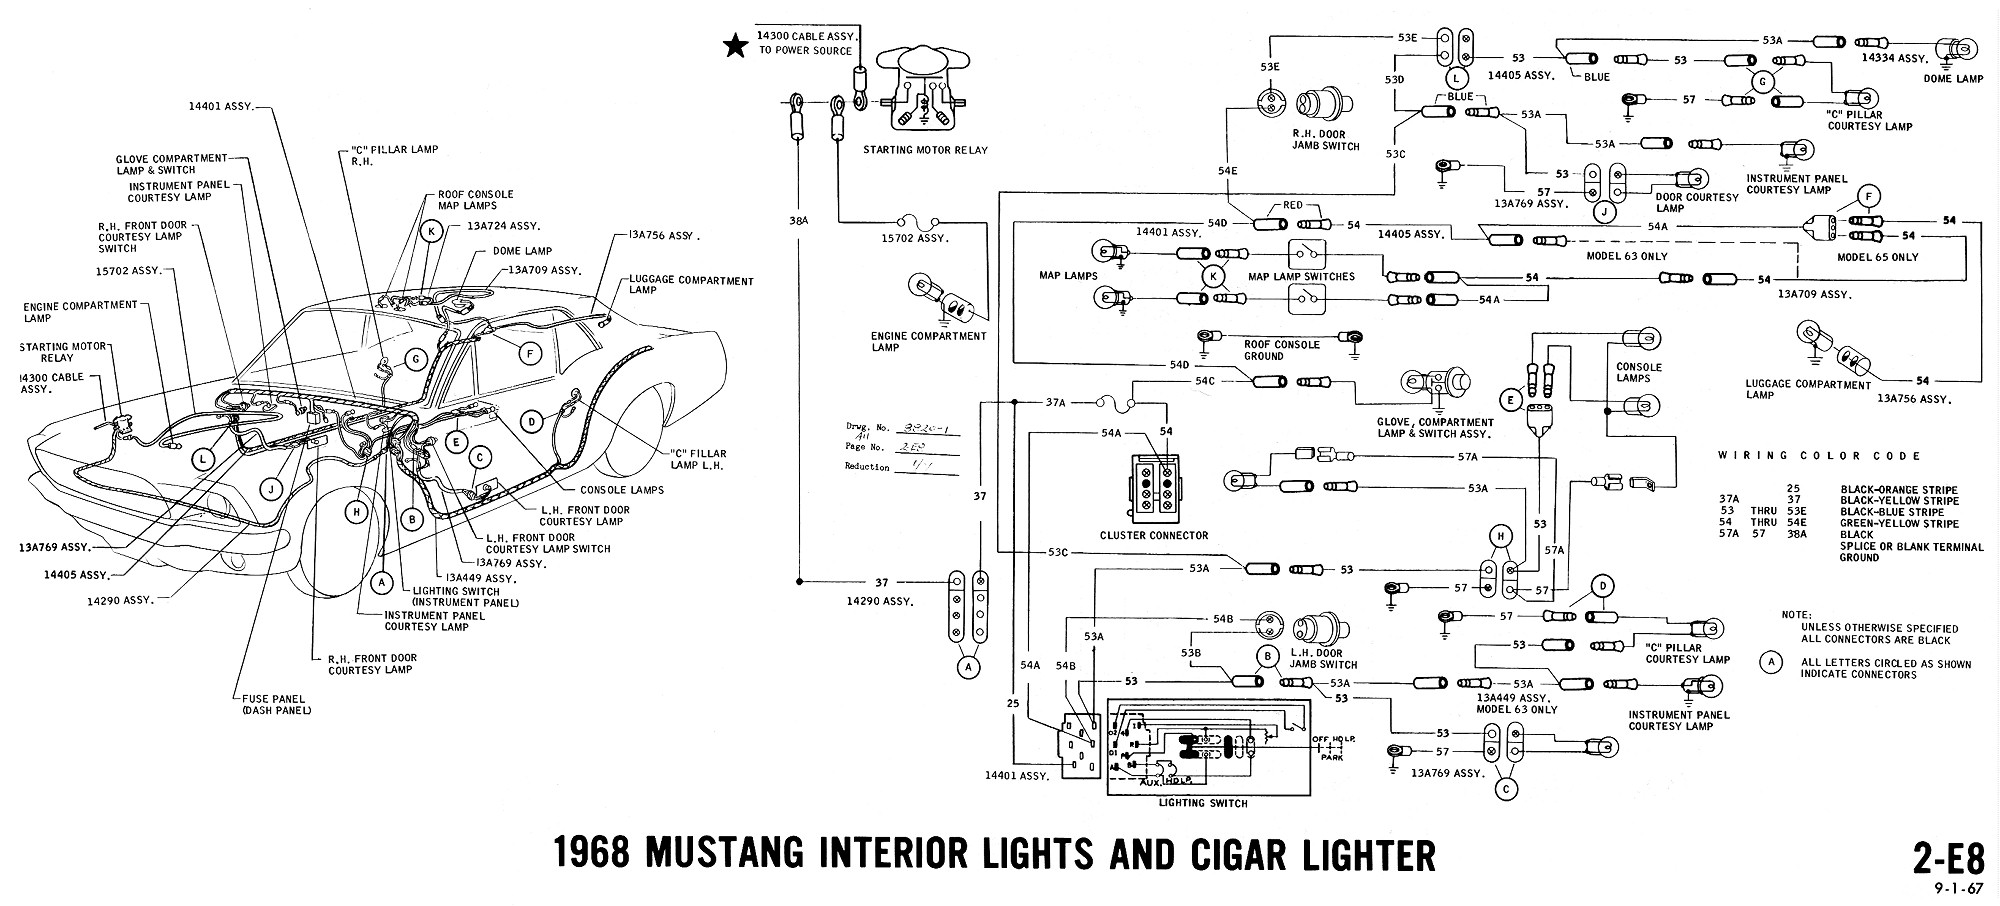 1955 Chevy Truck Tail Light Wiring Diagram Html together with 1965 Mustang Wiring Diagrams moreover 3 Tube Transmitter Schematic in addition 1967 Mustang Wiring And Vacuum Diagrams also 67 Cougar Turn Signal Wiring Diagram. on 1965 mustang radio wiring diagram